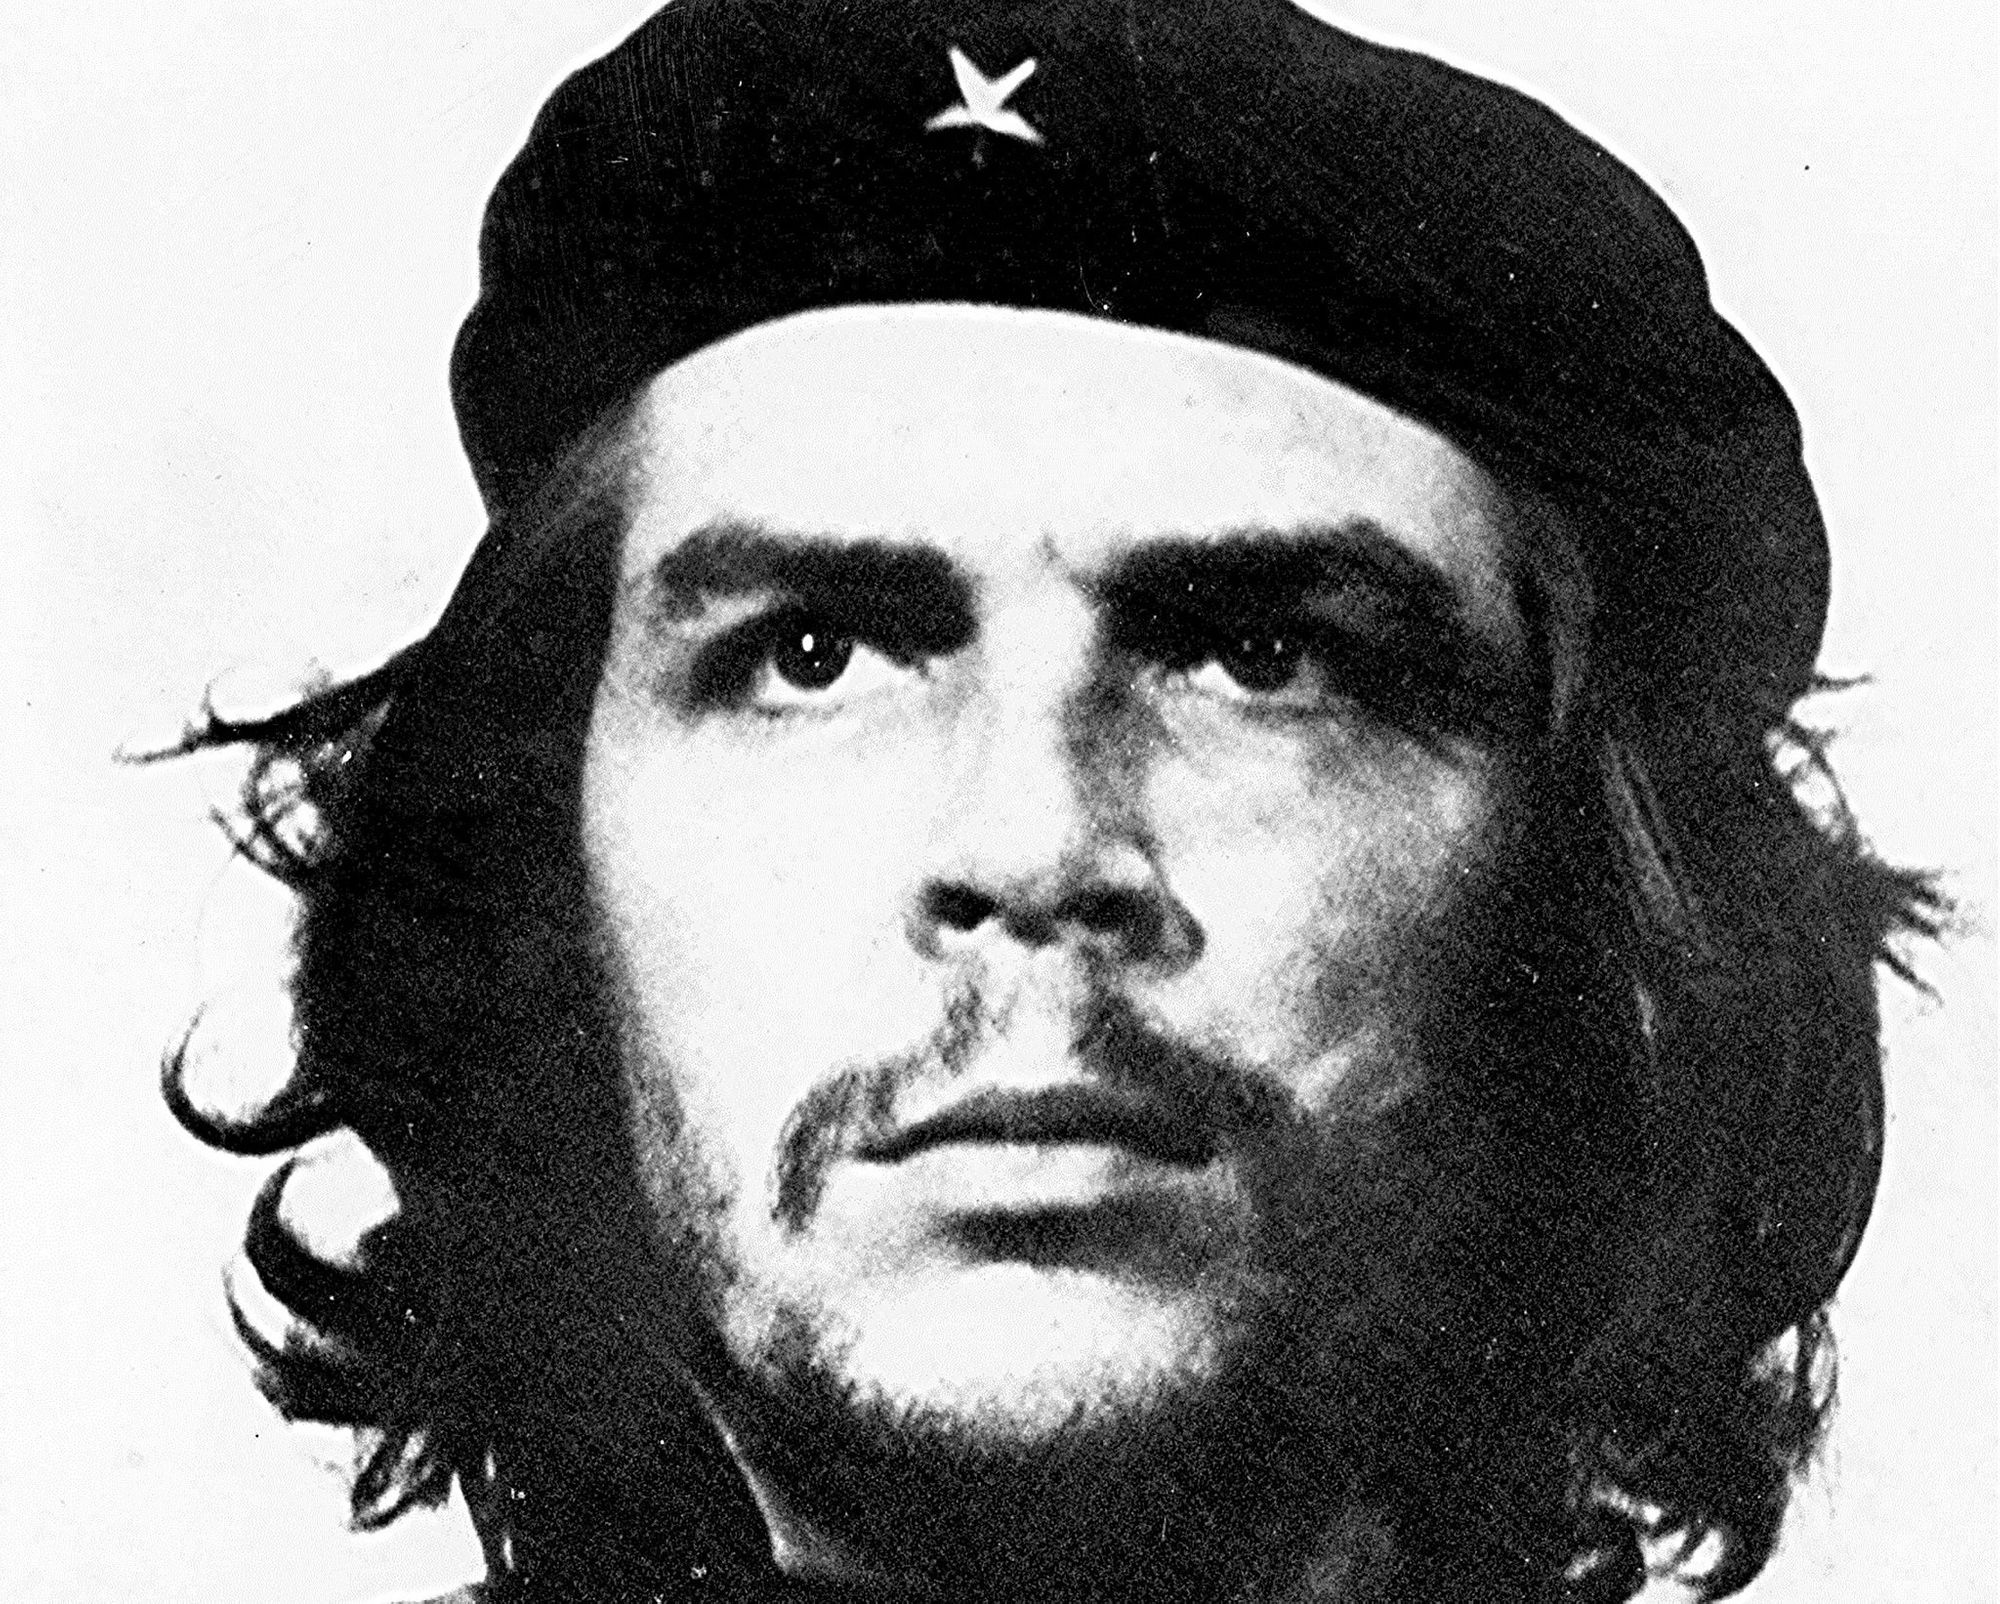 Che in England